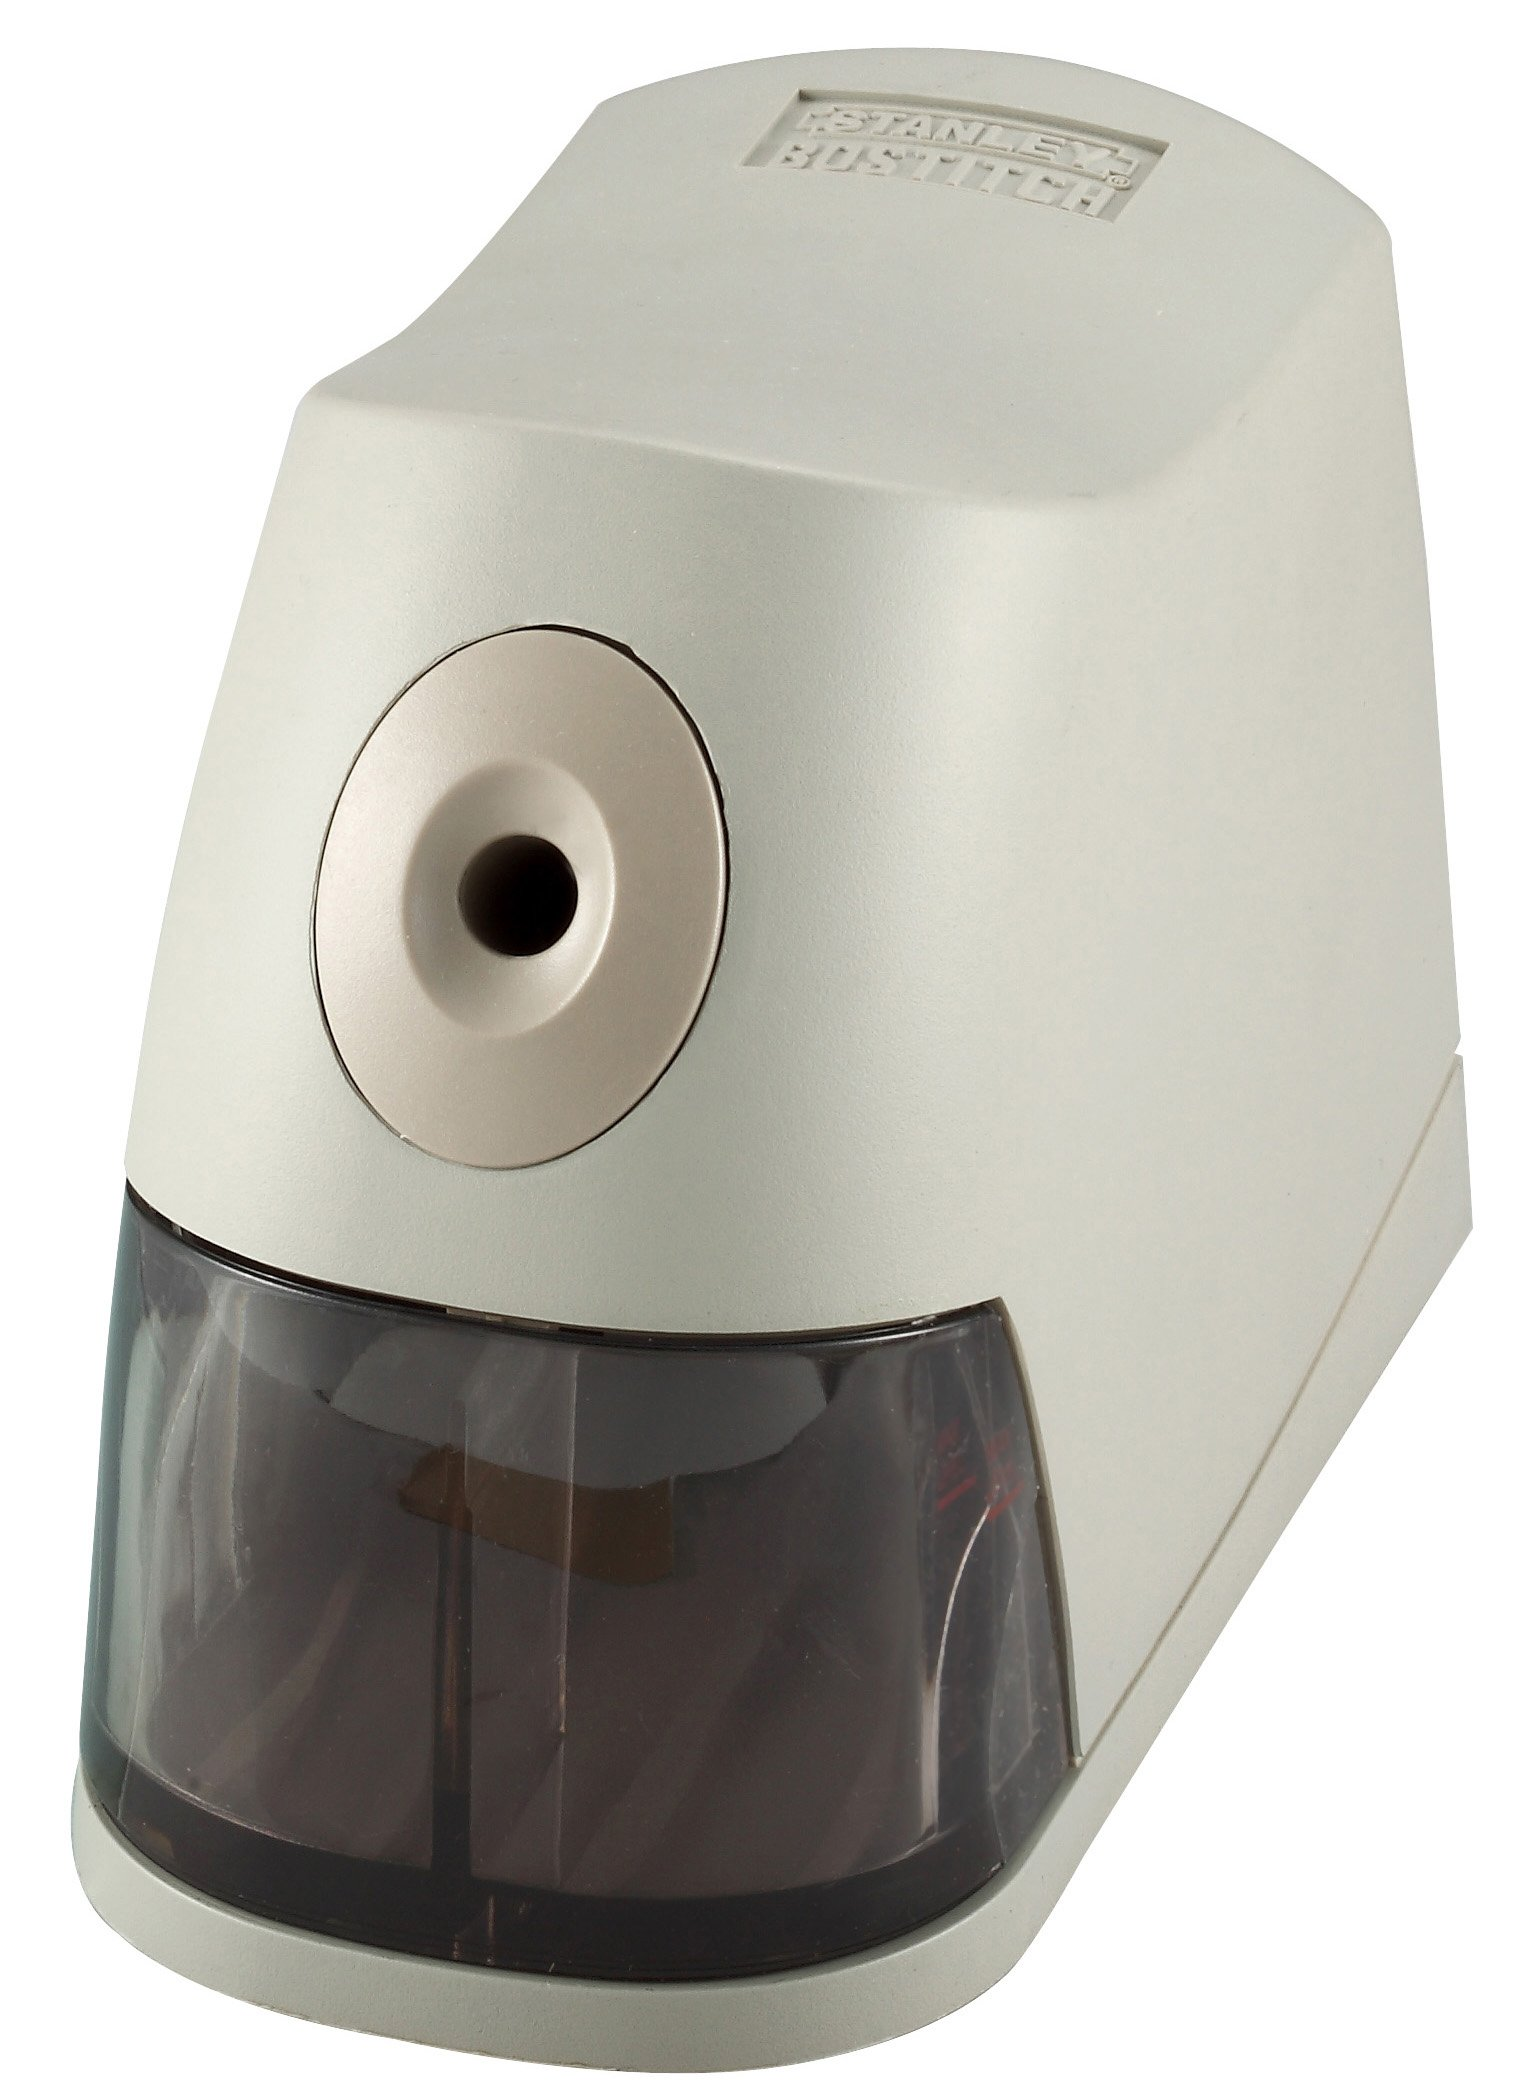 Bostitch Desktop Electric Pencil Sharpener, Gray (02696)